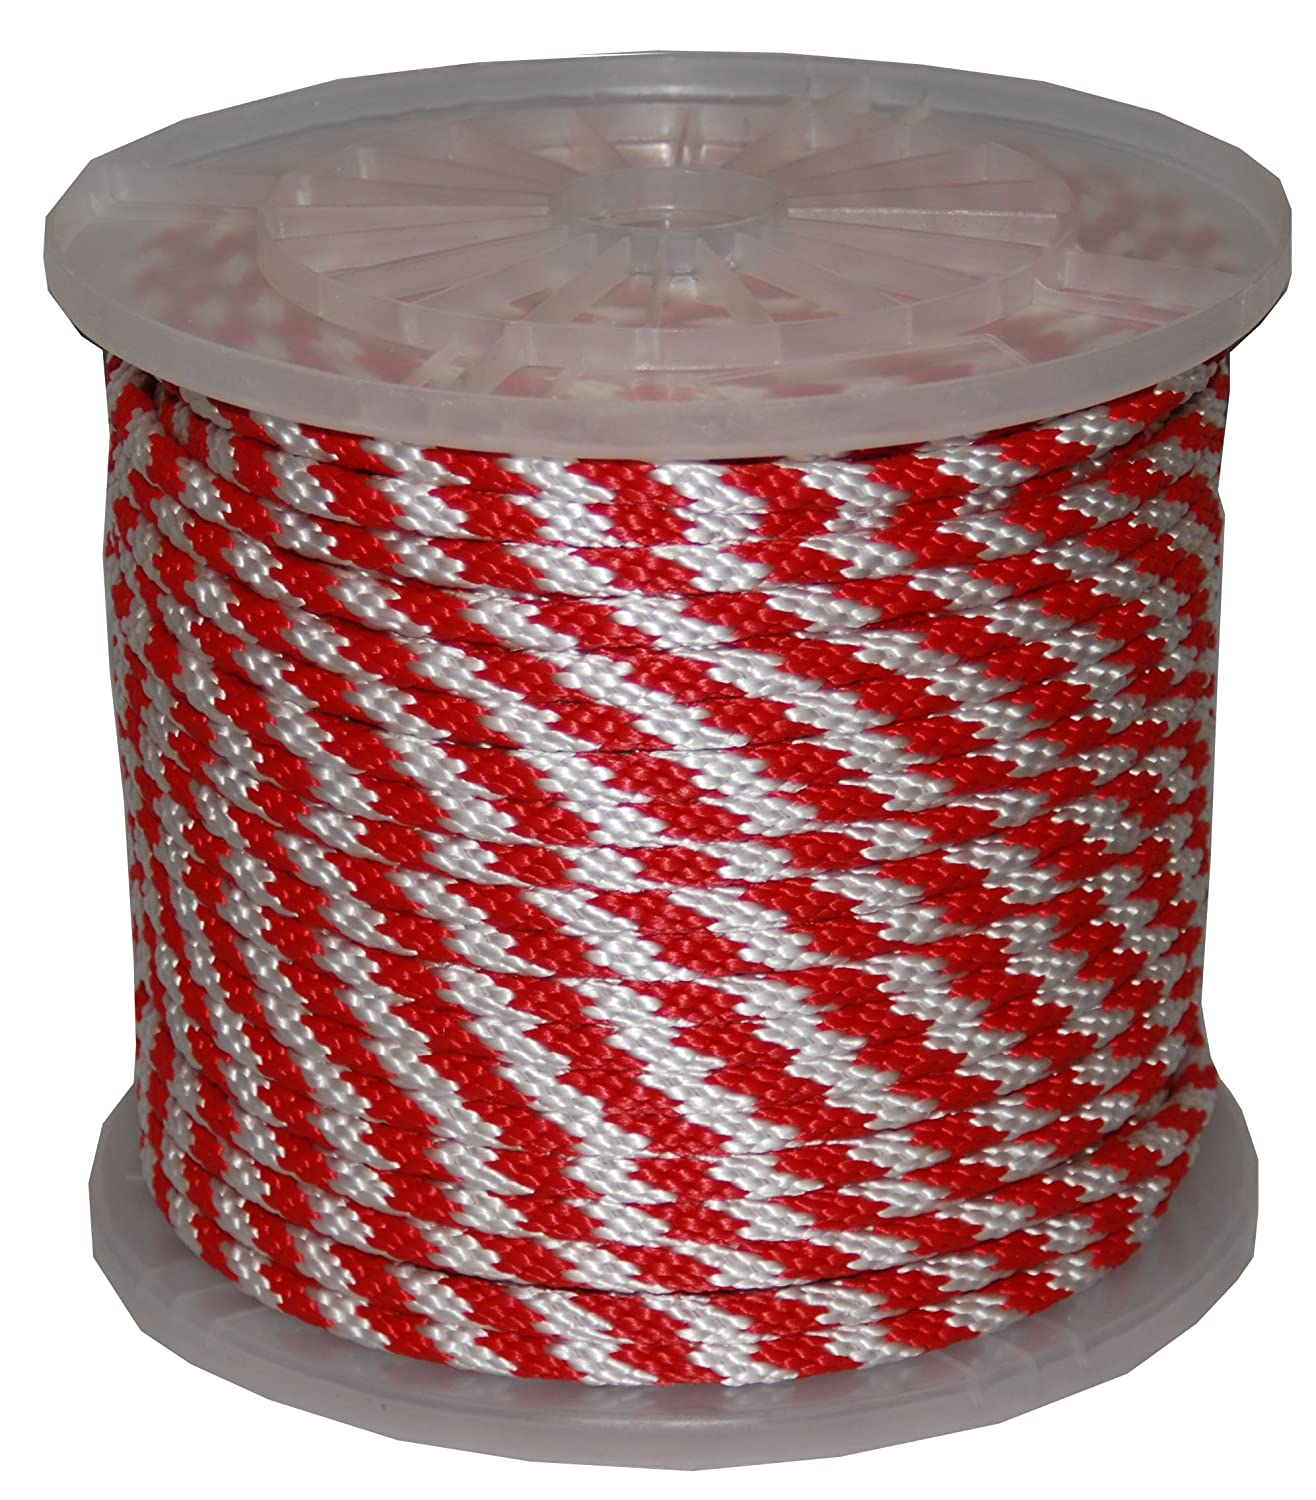 T.W . Evans Cordage 98326 3/8-Inch by 500-Feet Solid Braid Propylene Multifilament Derby Rope, Red and White by T.W . Evans Cordage Co. B00DKA37FW